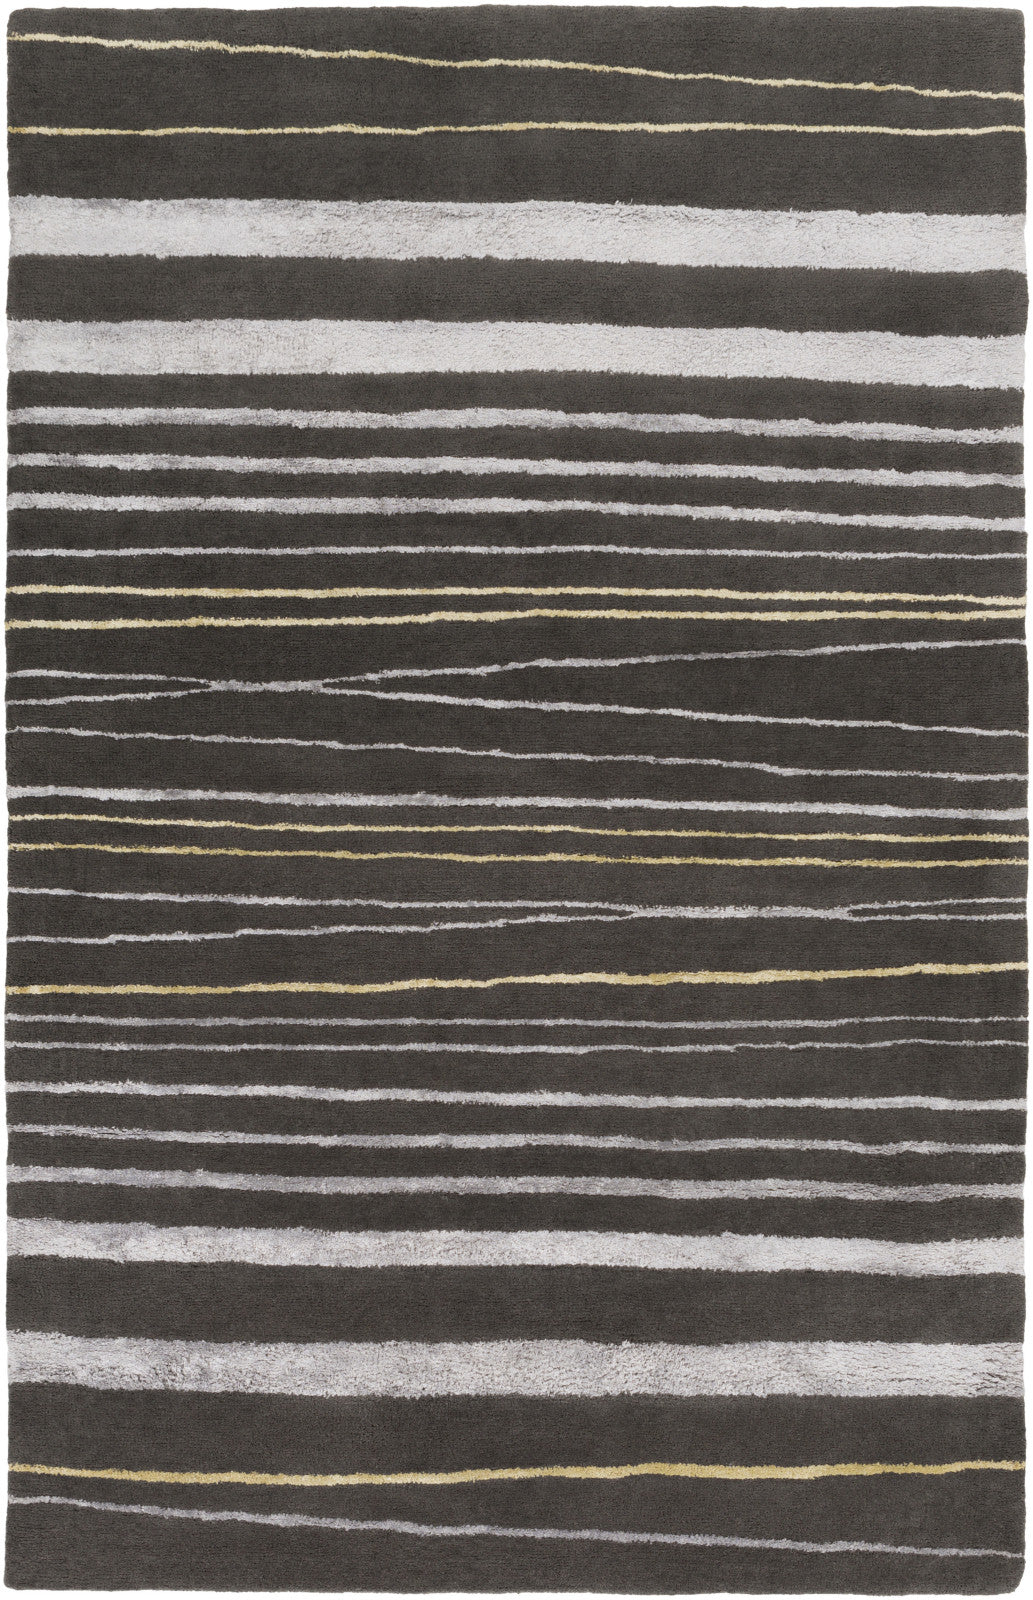 Surya Manor MNR-1005 Area Rug by GlucksteinHome